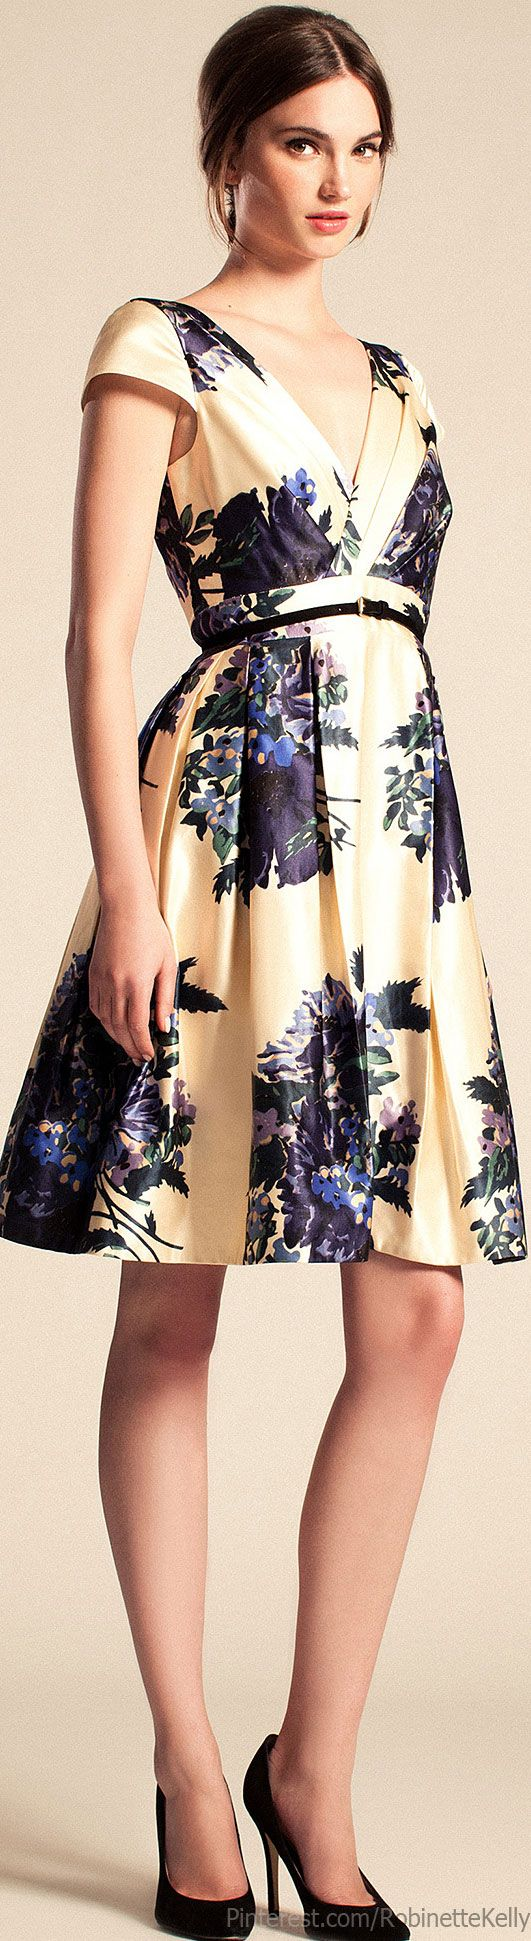 Temperley London | Resort 2014 jαɢlαdy